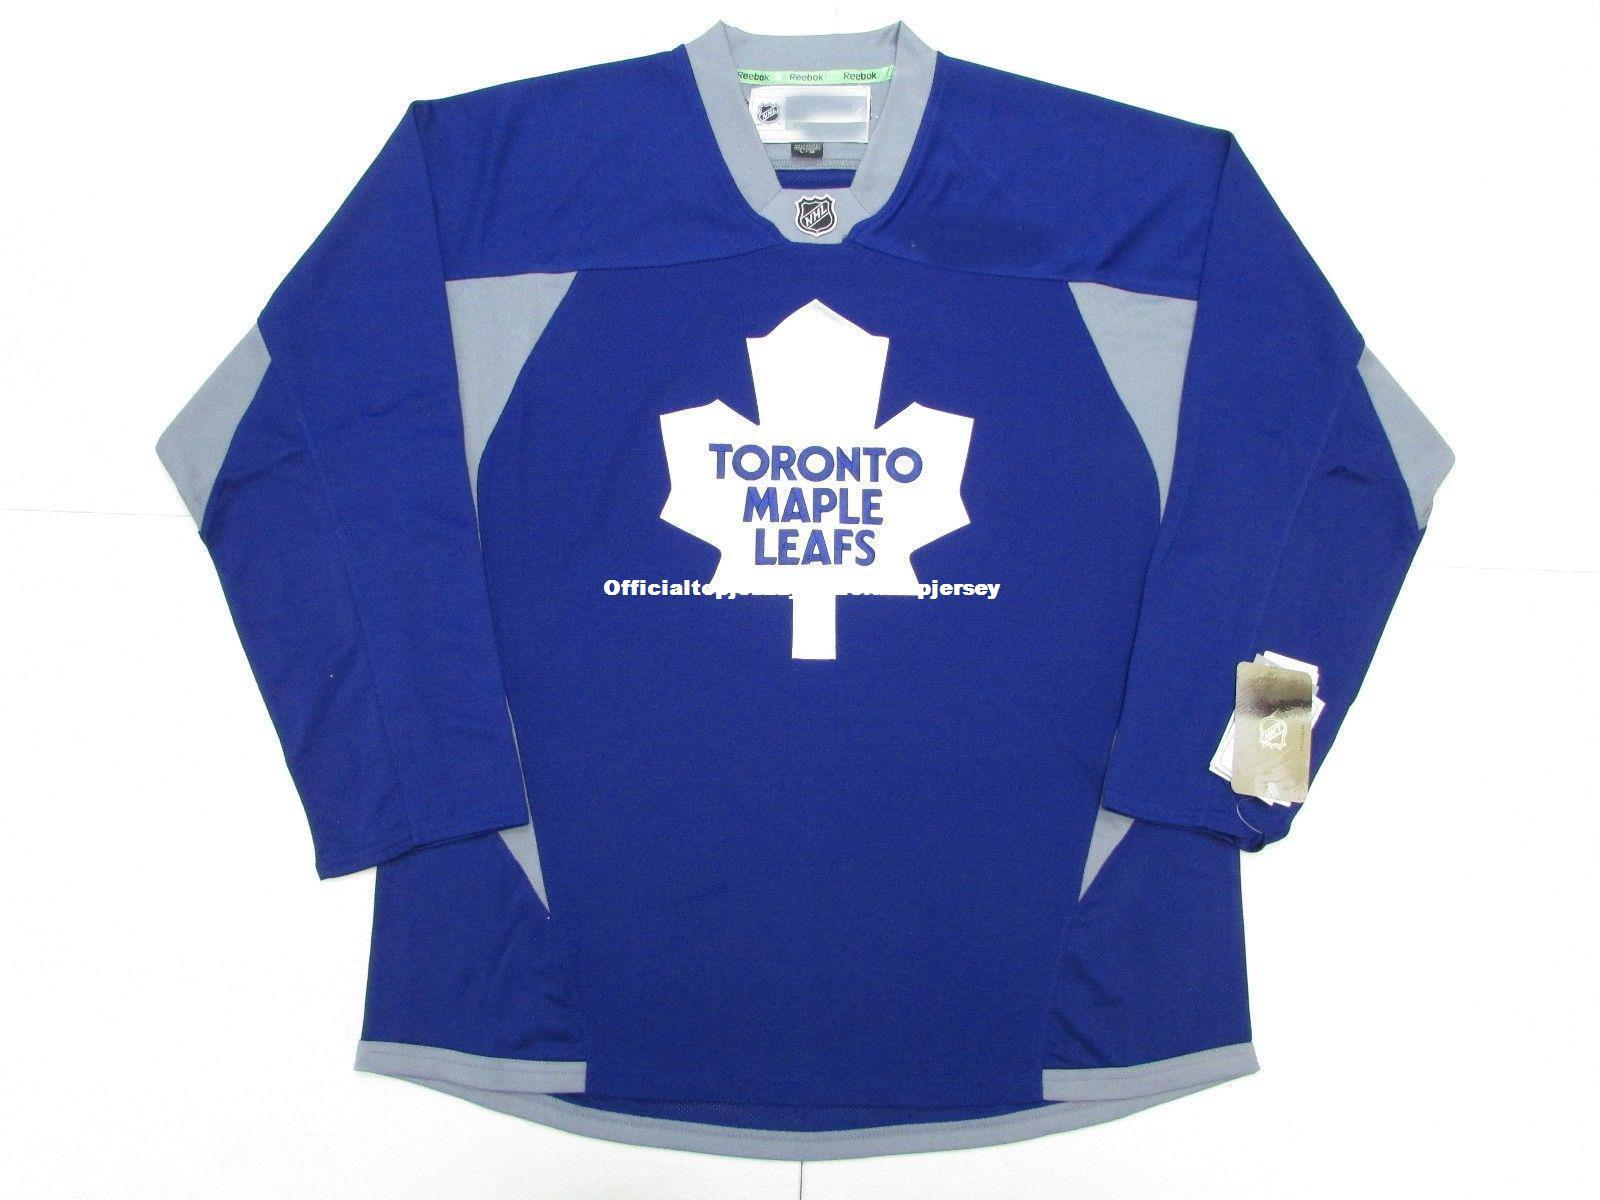 7d21f3284a6 2019 Cheap Custom TORONTO MAPLE LEAFS BLUE PRACTICE HOCKEY JERSEY Stitch  Add Any Number Any Name Mens Hockey Jersey GOALIE CUT 5XL From  Officialtopjersey